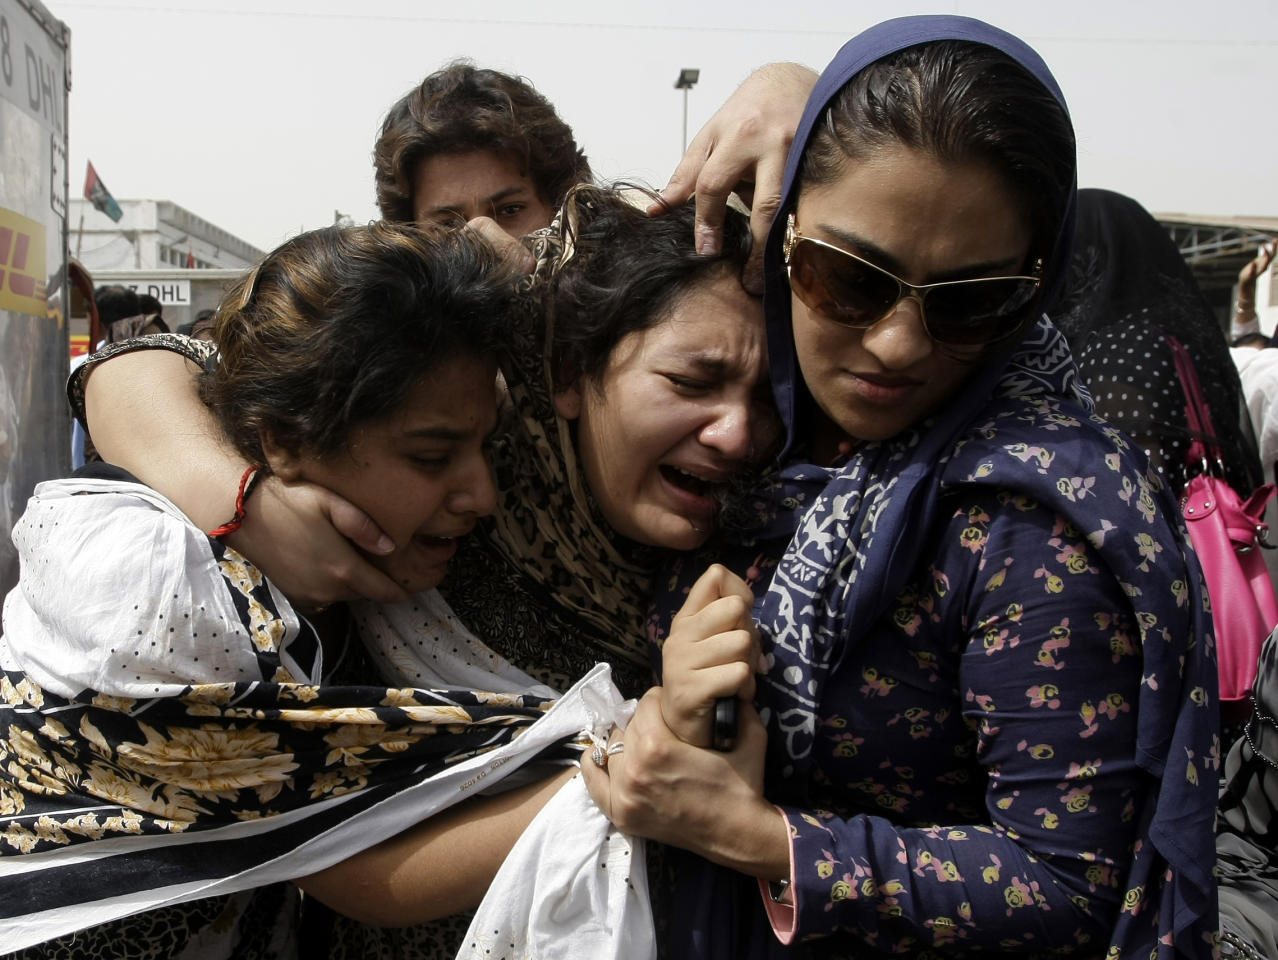 Family members of Pakistani acid attack victim Fakhra Younnus, mourn her death at Karachi airport in Pakistan on Sunday, March 25, 2012. Fakhra, who committed suicide by jumping from the sixth floor of her flat in Rome, was a victim of an acid attack allegedly carried out 12 years ago by her husband, the son of a feudal politician. (AP Photo)